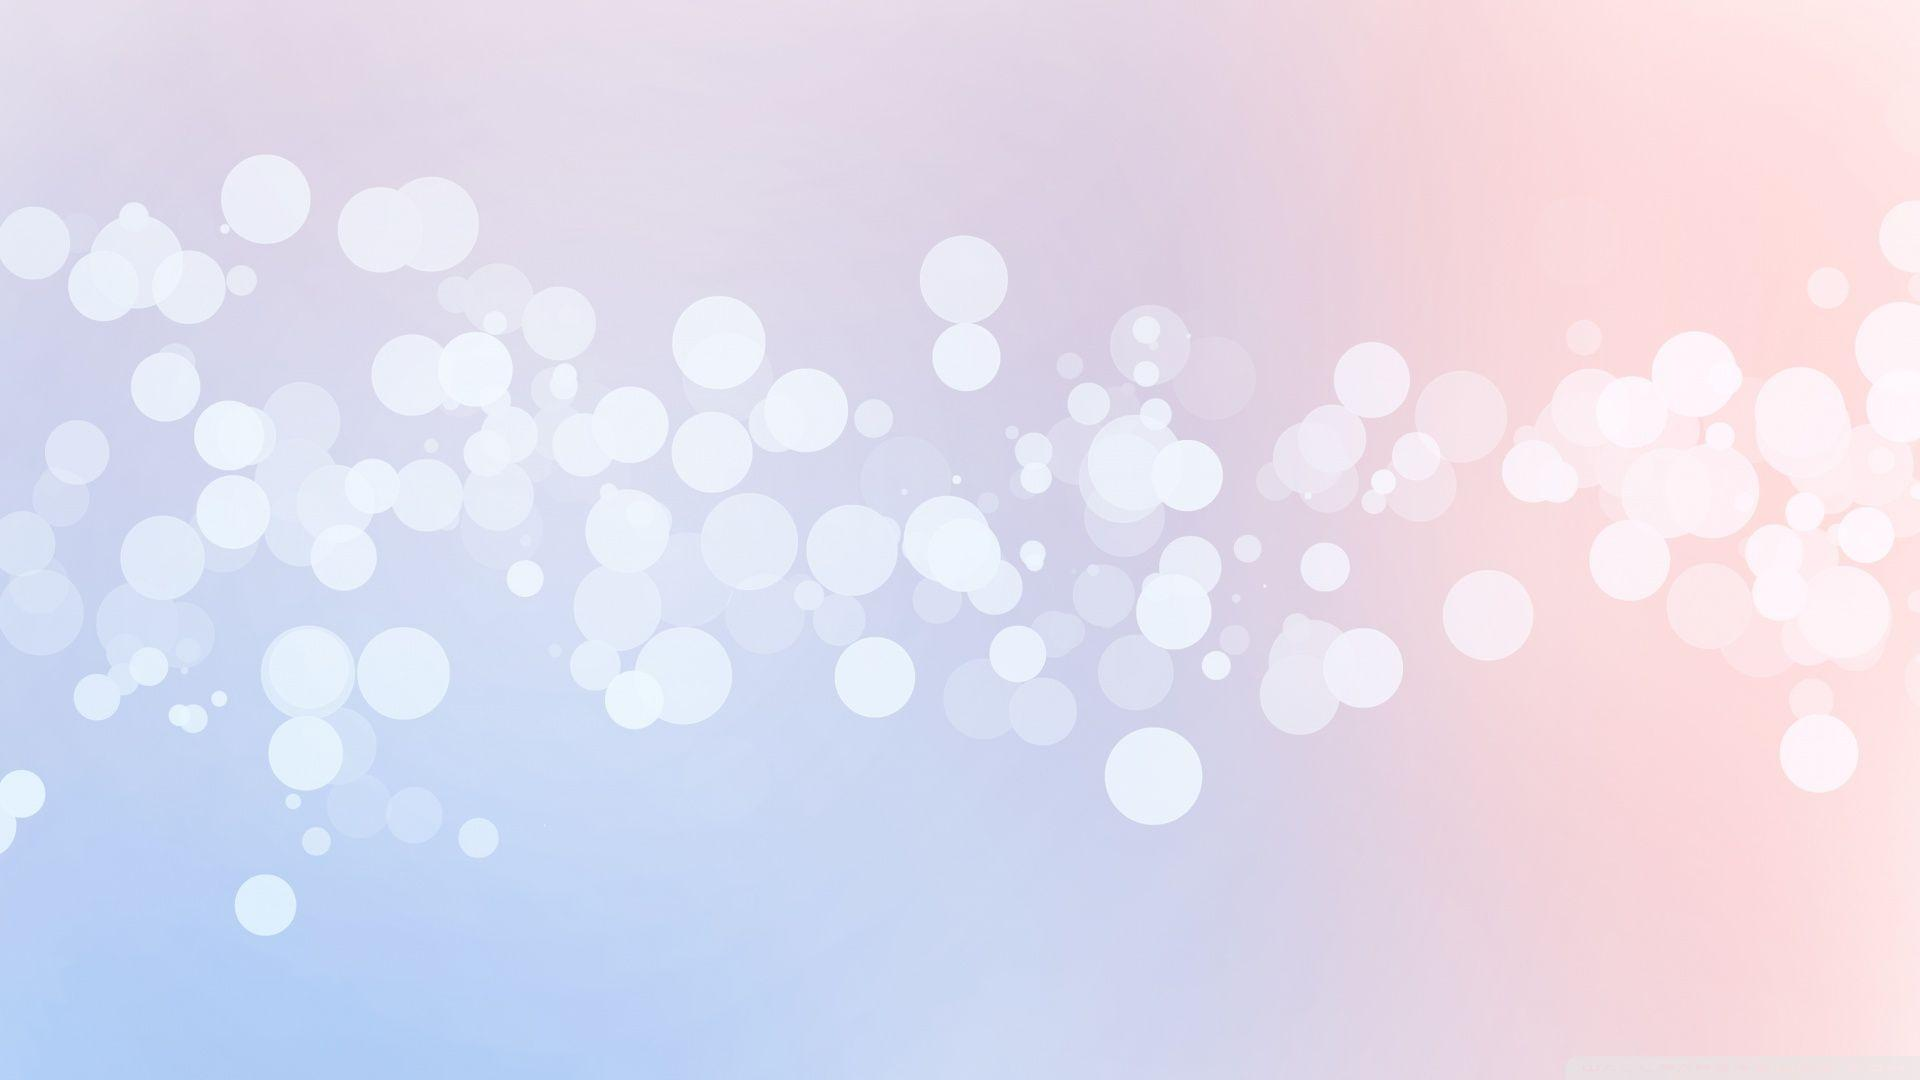 Download Soft Focus Wallpaper 1920x1080 | Wallpoper #